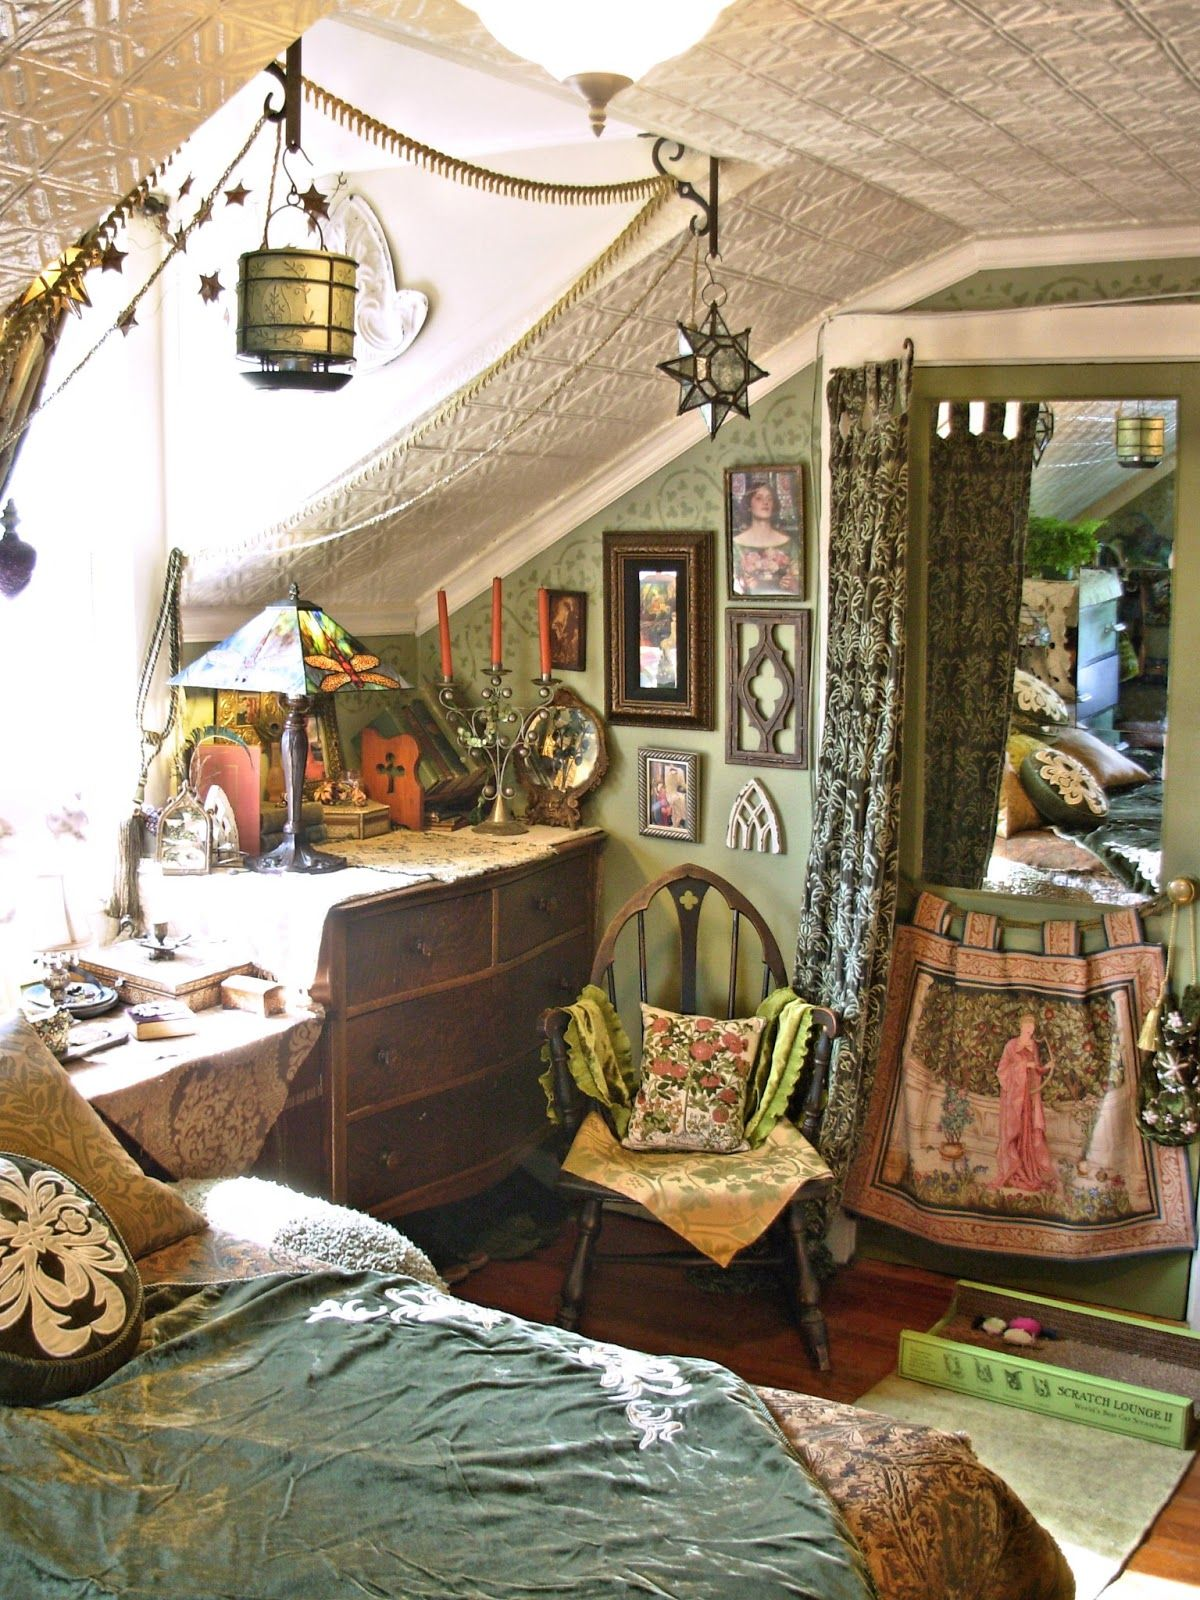 Uncategorized Whimsical Decorating Ideas oh to have a tiny hideaway like this one full of whimsical boho decor bliss bright gypsy color hippie bohemian mixed pattern home decorating ideas aka my dream room